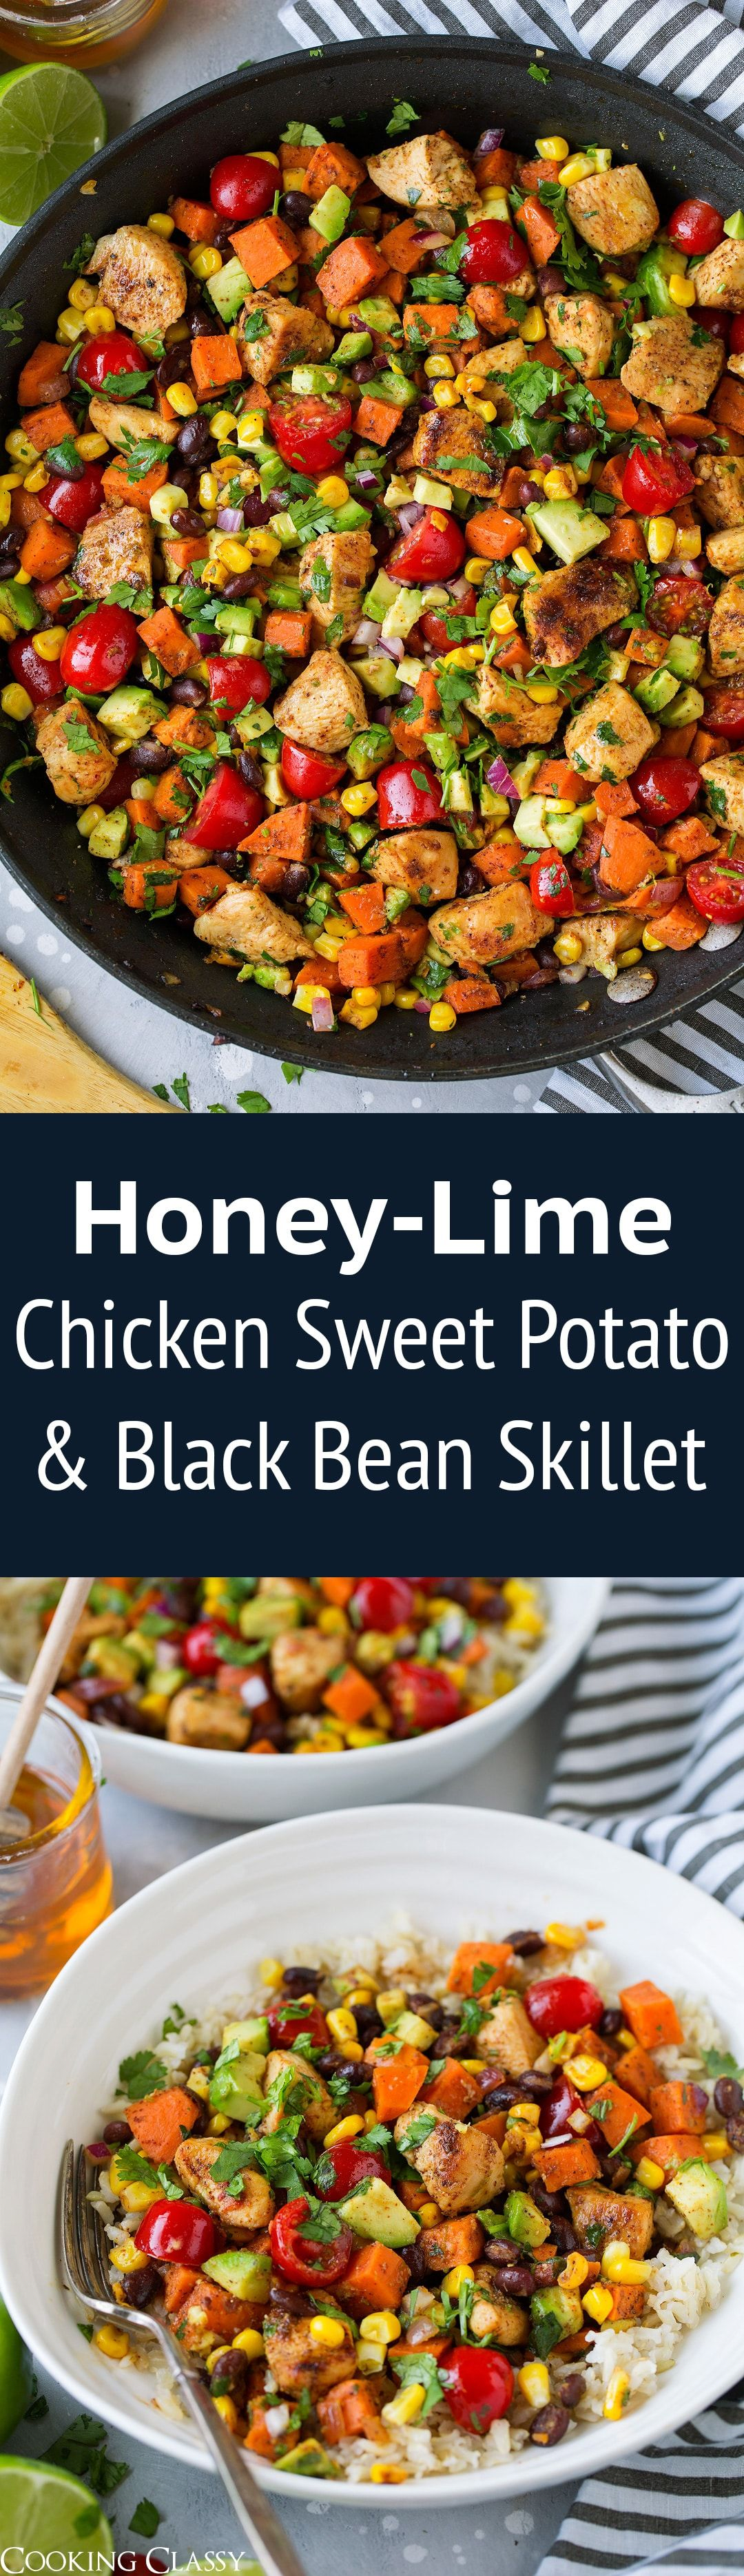 Mexican Honey-Lime Chicken and Veggie Skillet Recipe - Cooking Classy